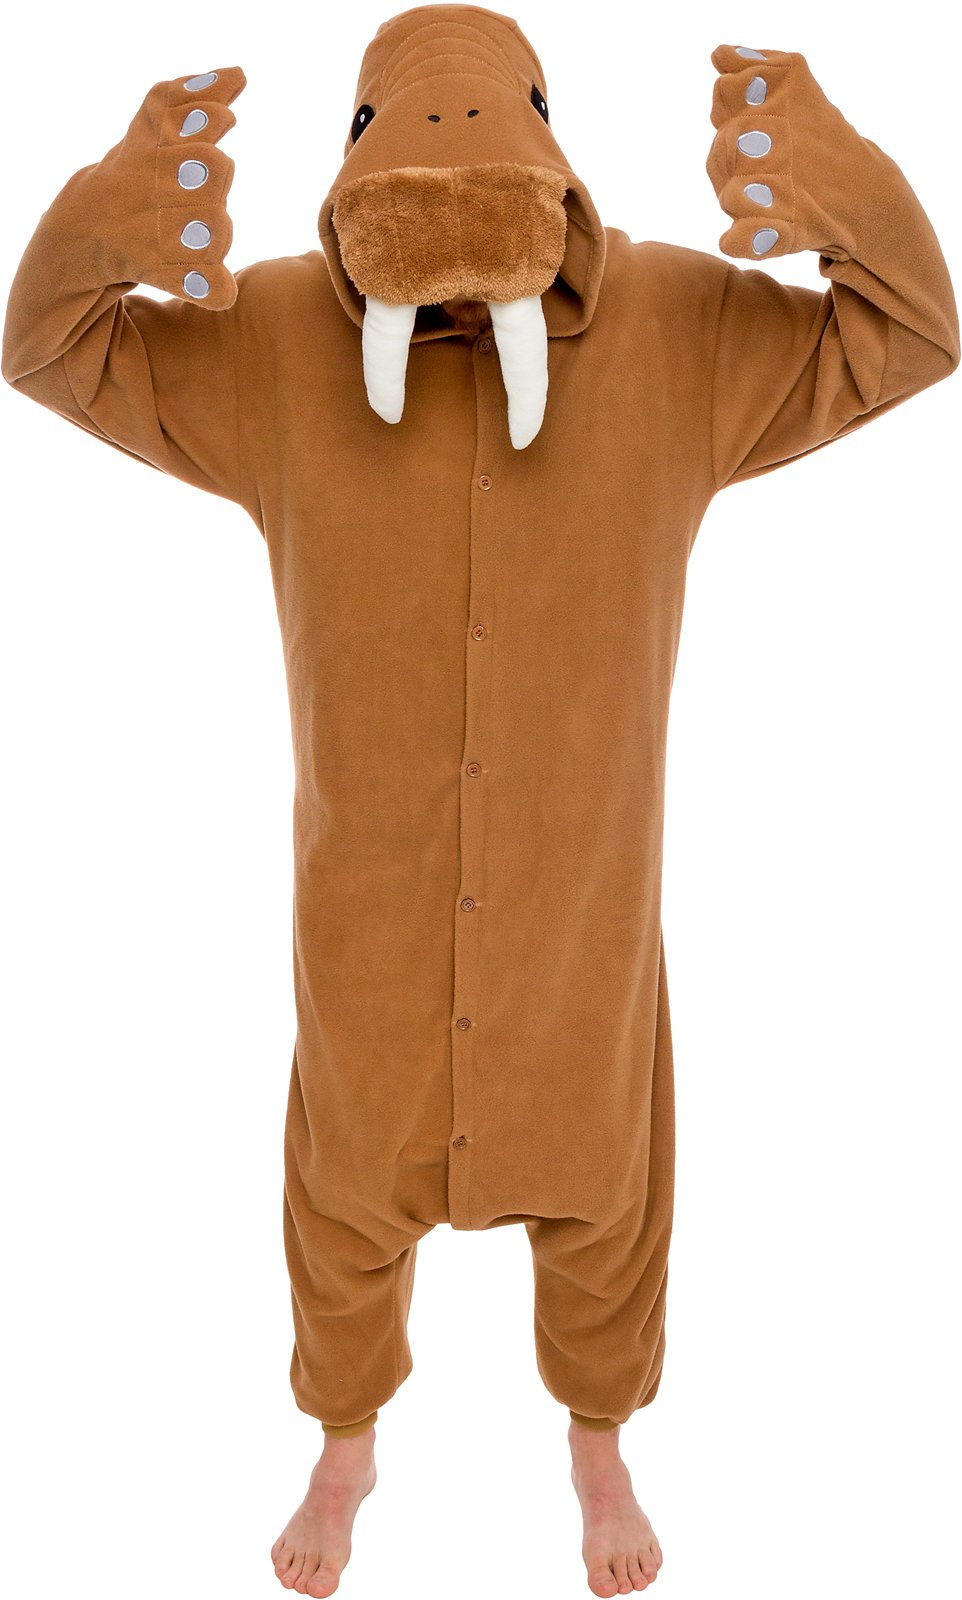 Silver Lilly Unisex Adult Pajamas - Plush One Piece Cosplay Walrus Animal  Costume (Brown fea411ac4